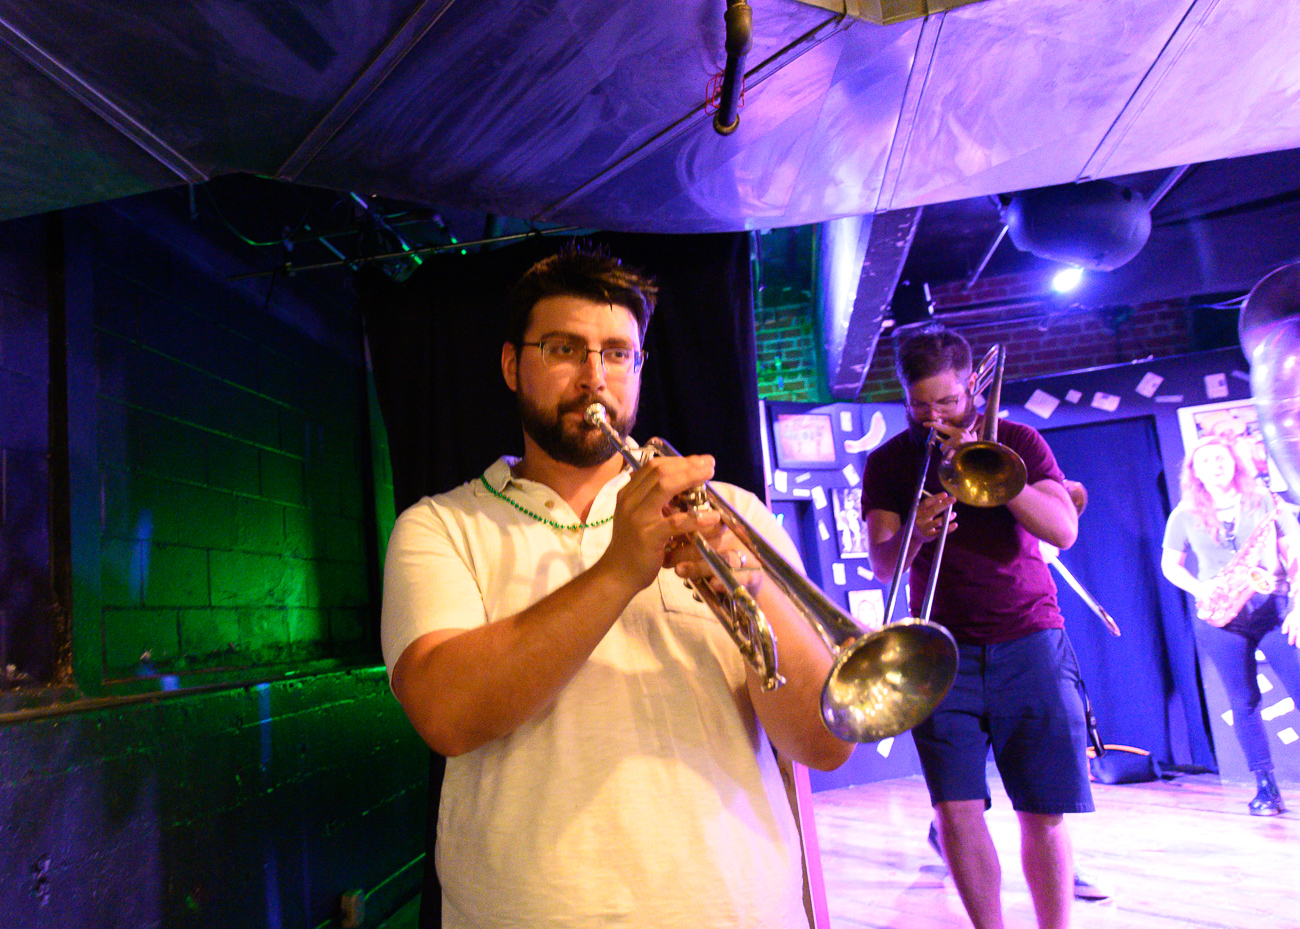 Largemouth Brass blew our minds while they walked around Jackson Street and through Know Theater as they performed. / Image: Cincinnati Refined // Published: 6.1.19